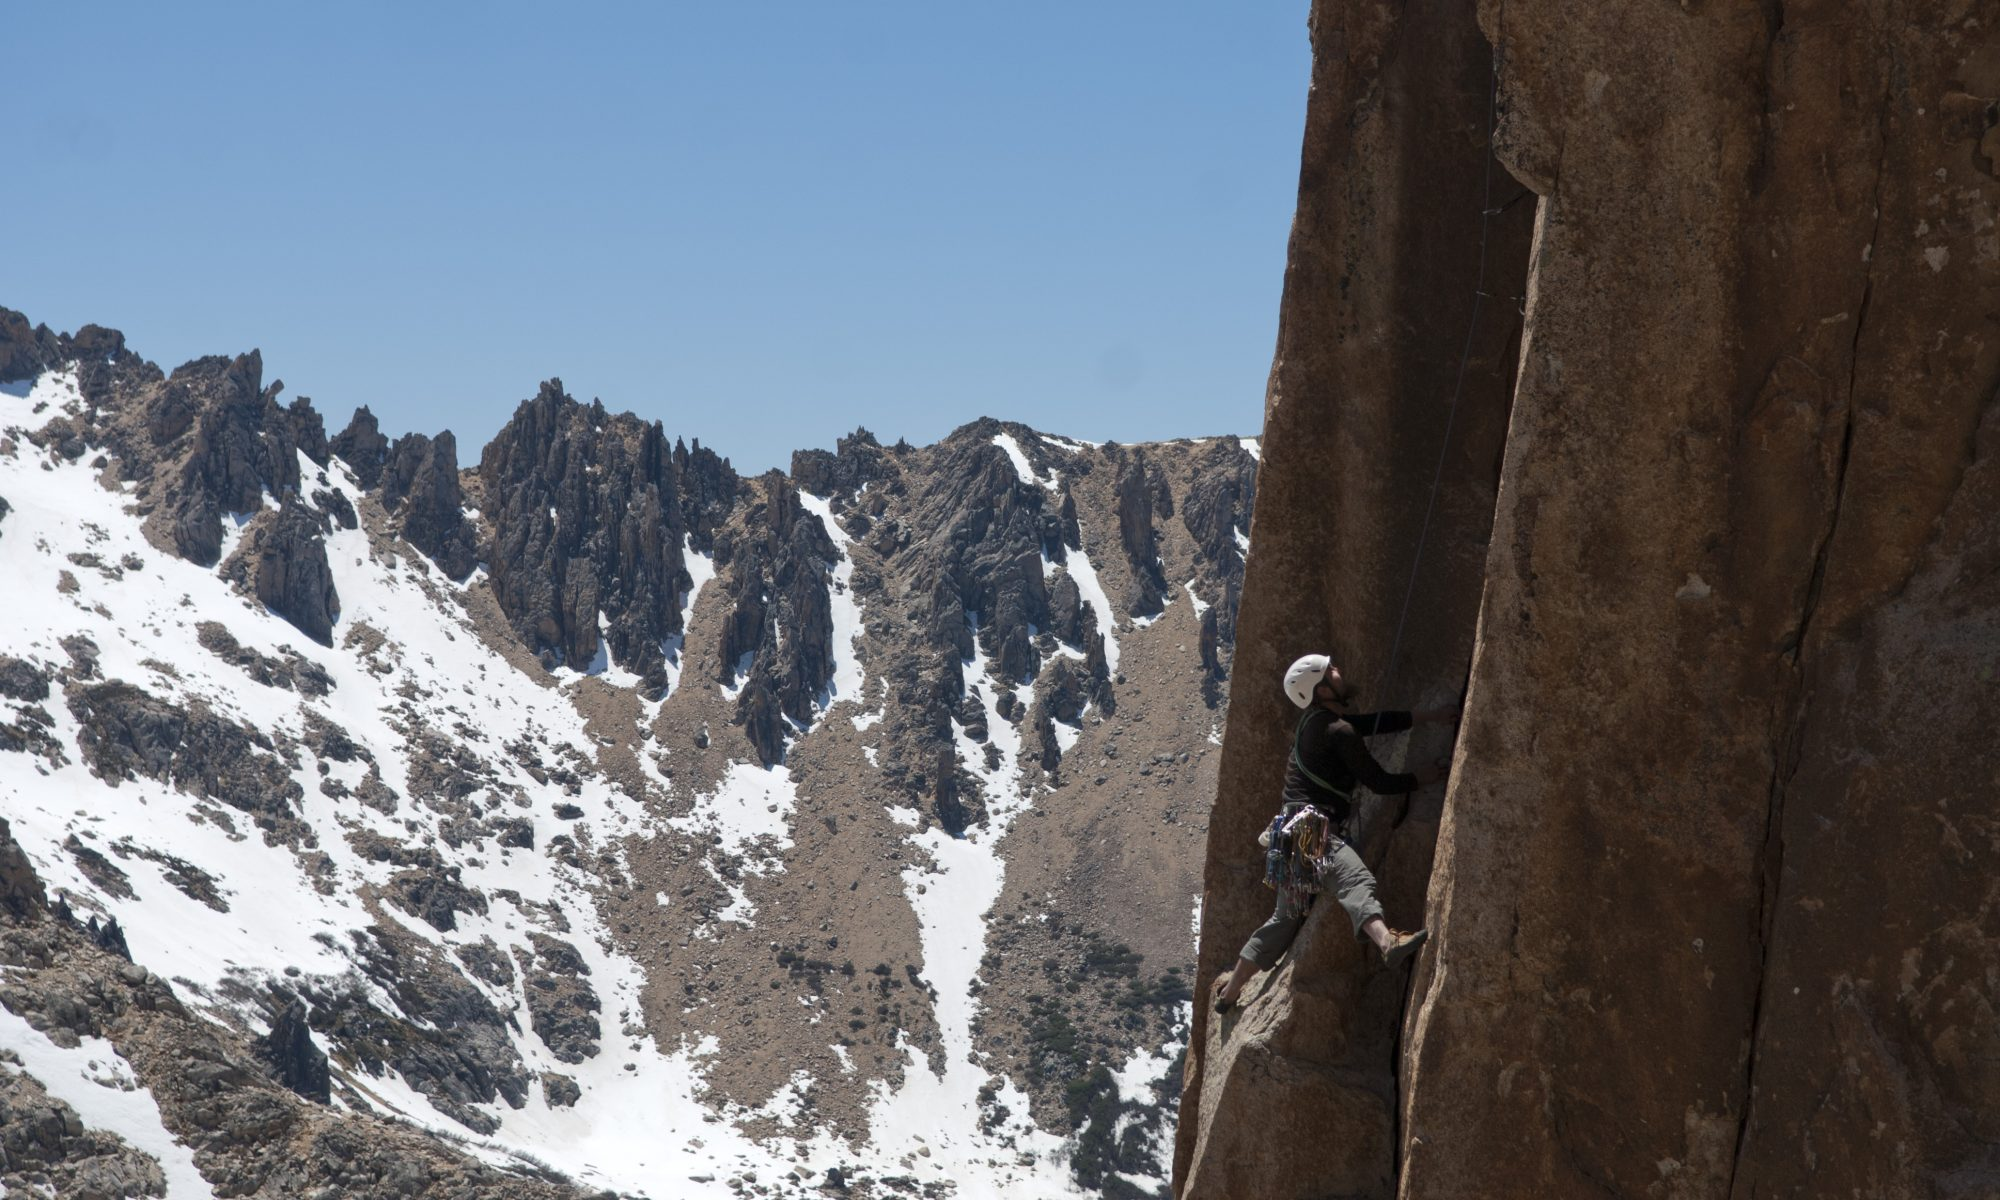 A climbing seconding the classic HVS corner pitch on the M2 tower ast Frey, Agentina.